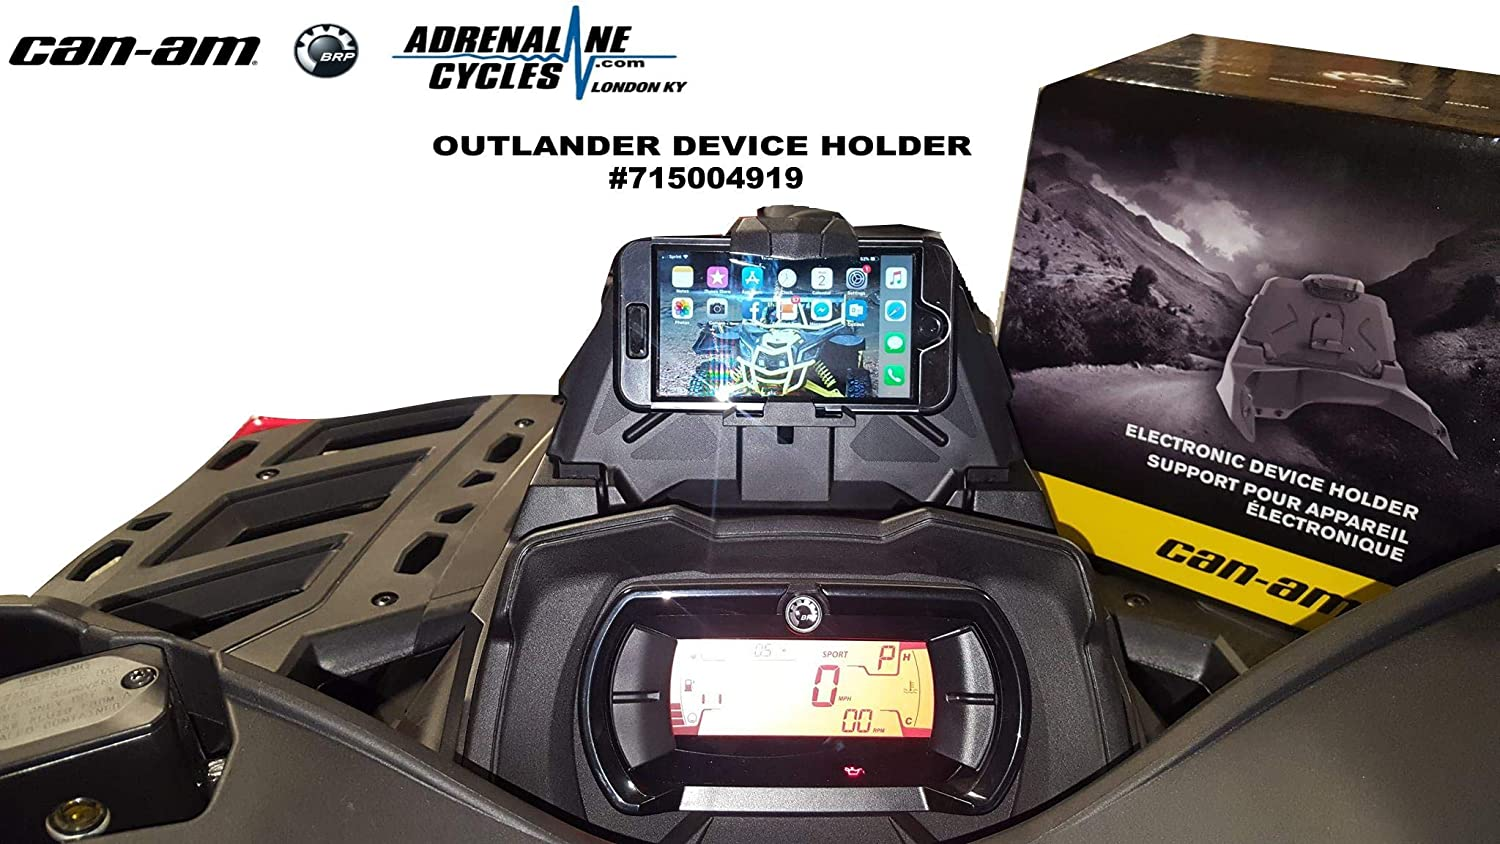 Can Am Outlander 500 650 800 1000 electronic device holder OEM NEW #715004919